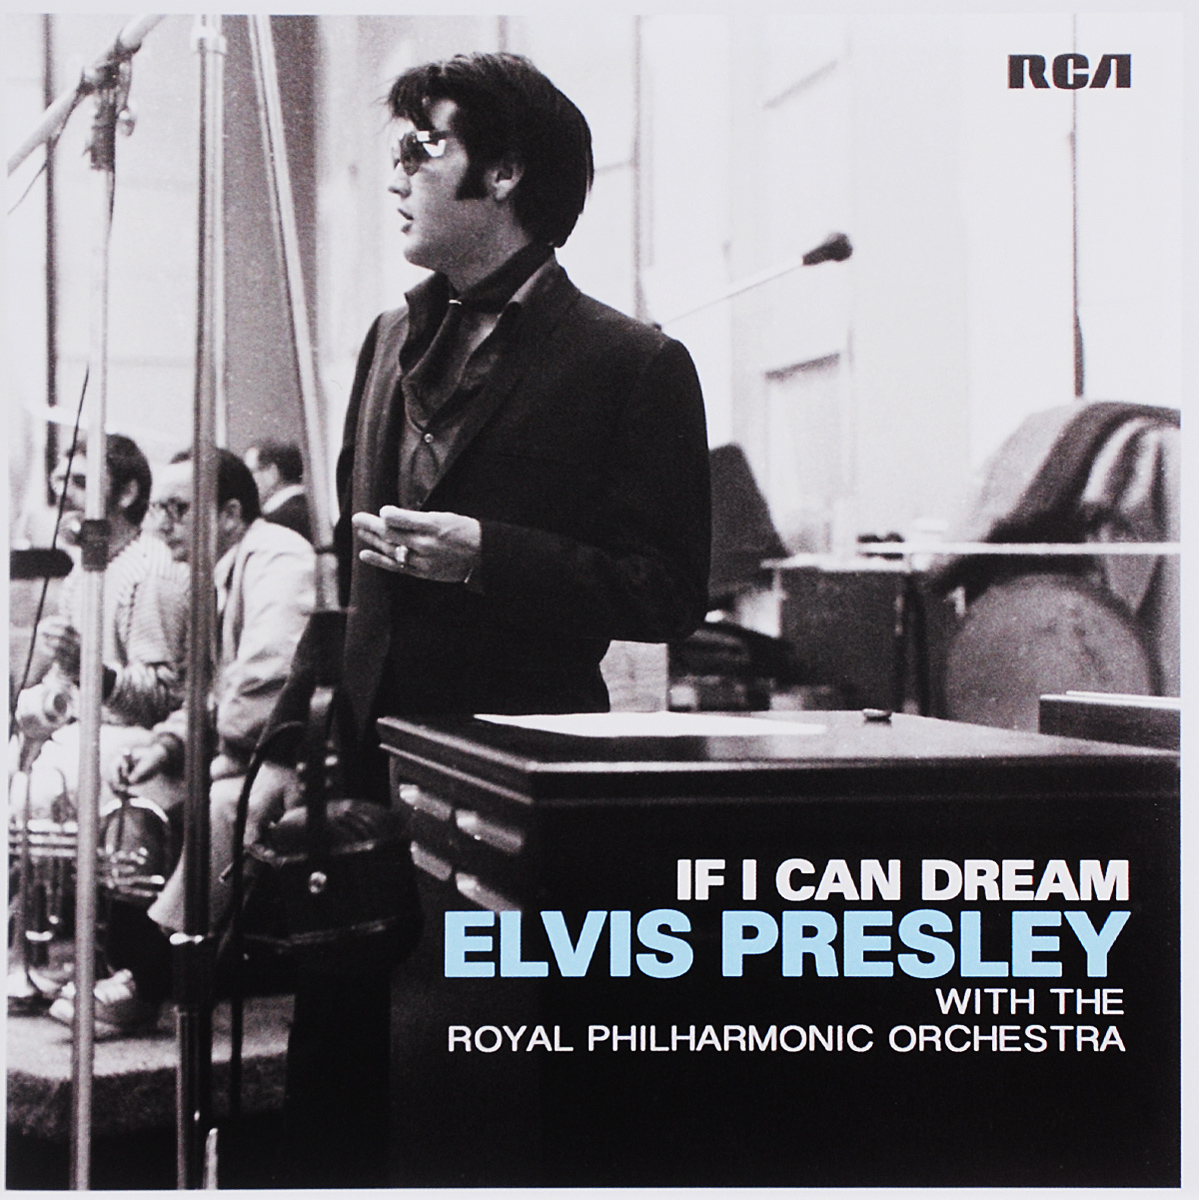 Элвис Пресли,The Royal Philharmonic Orchestra Elvis Presley With The Royal Philharmonic Orchestra. If I Can Dream виниловая пластинка elvis presley if i can dream with the royal philharmonic orchestra